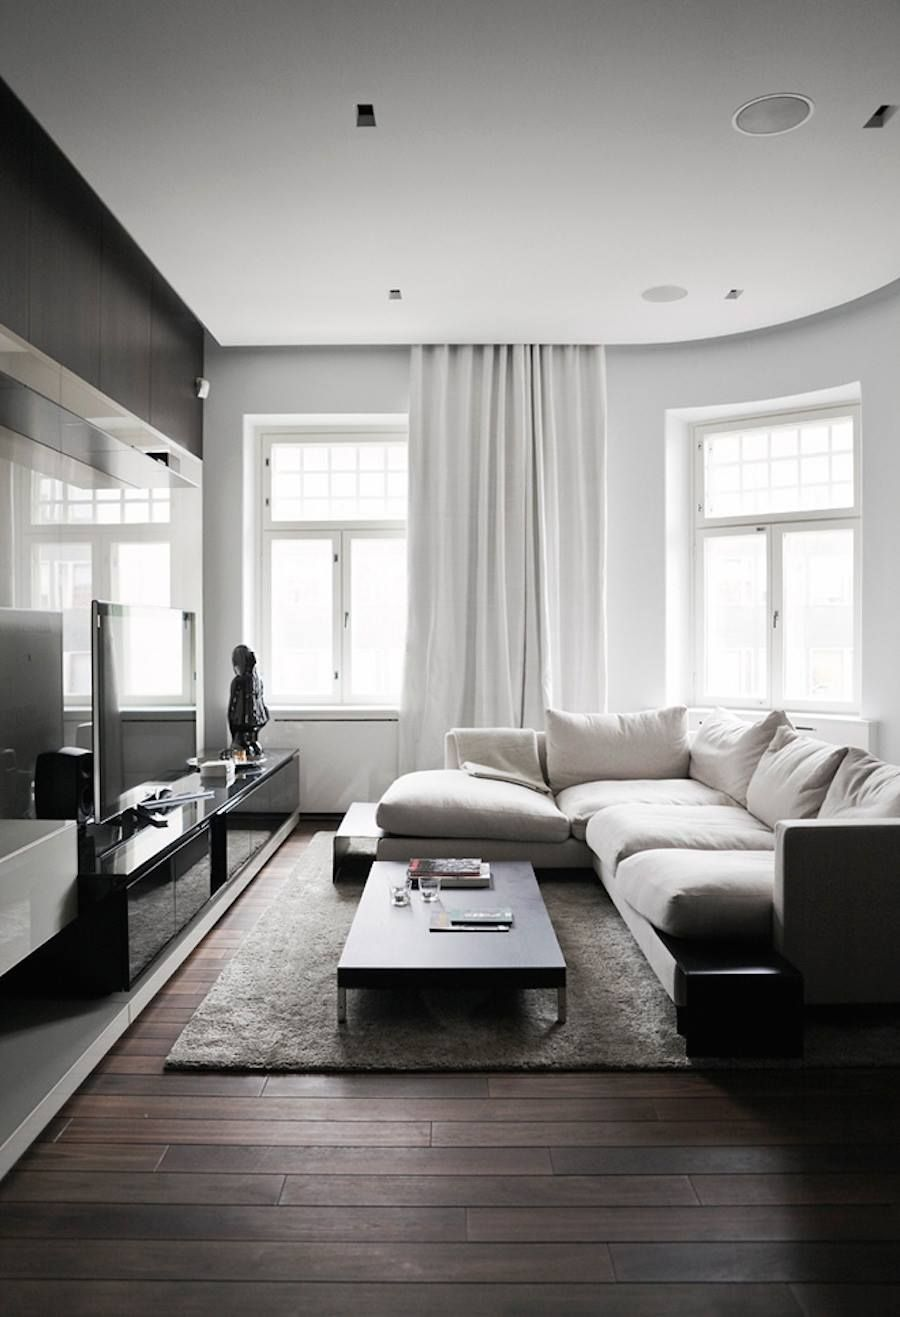 Pin by Farah Saheb on Home   Pinterest   Living rooms, Ceiling and Room